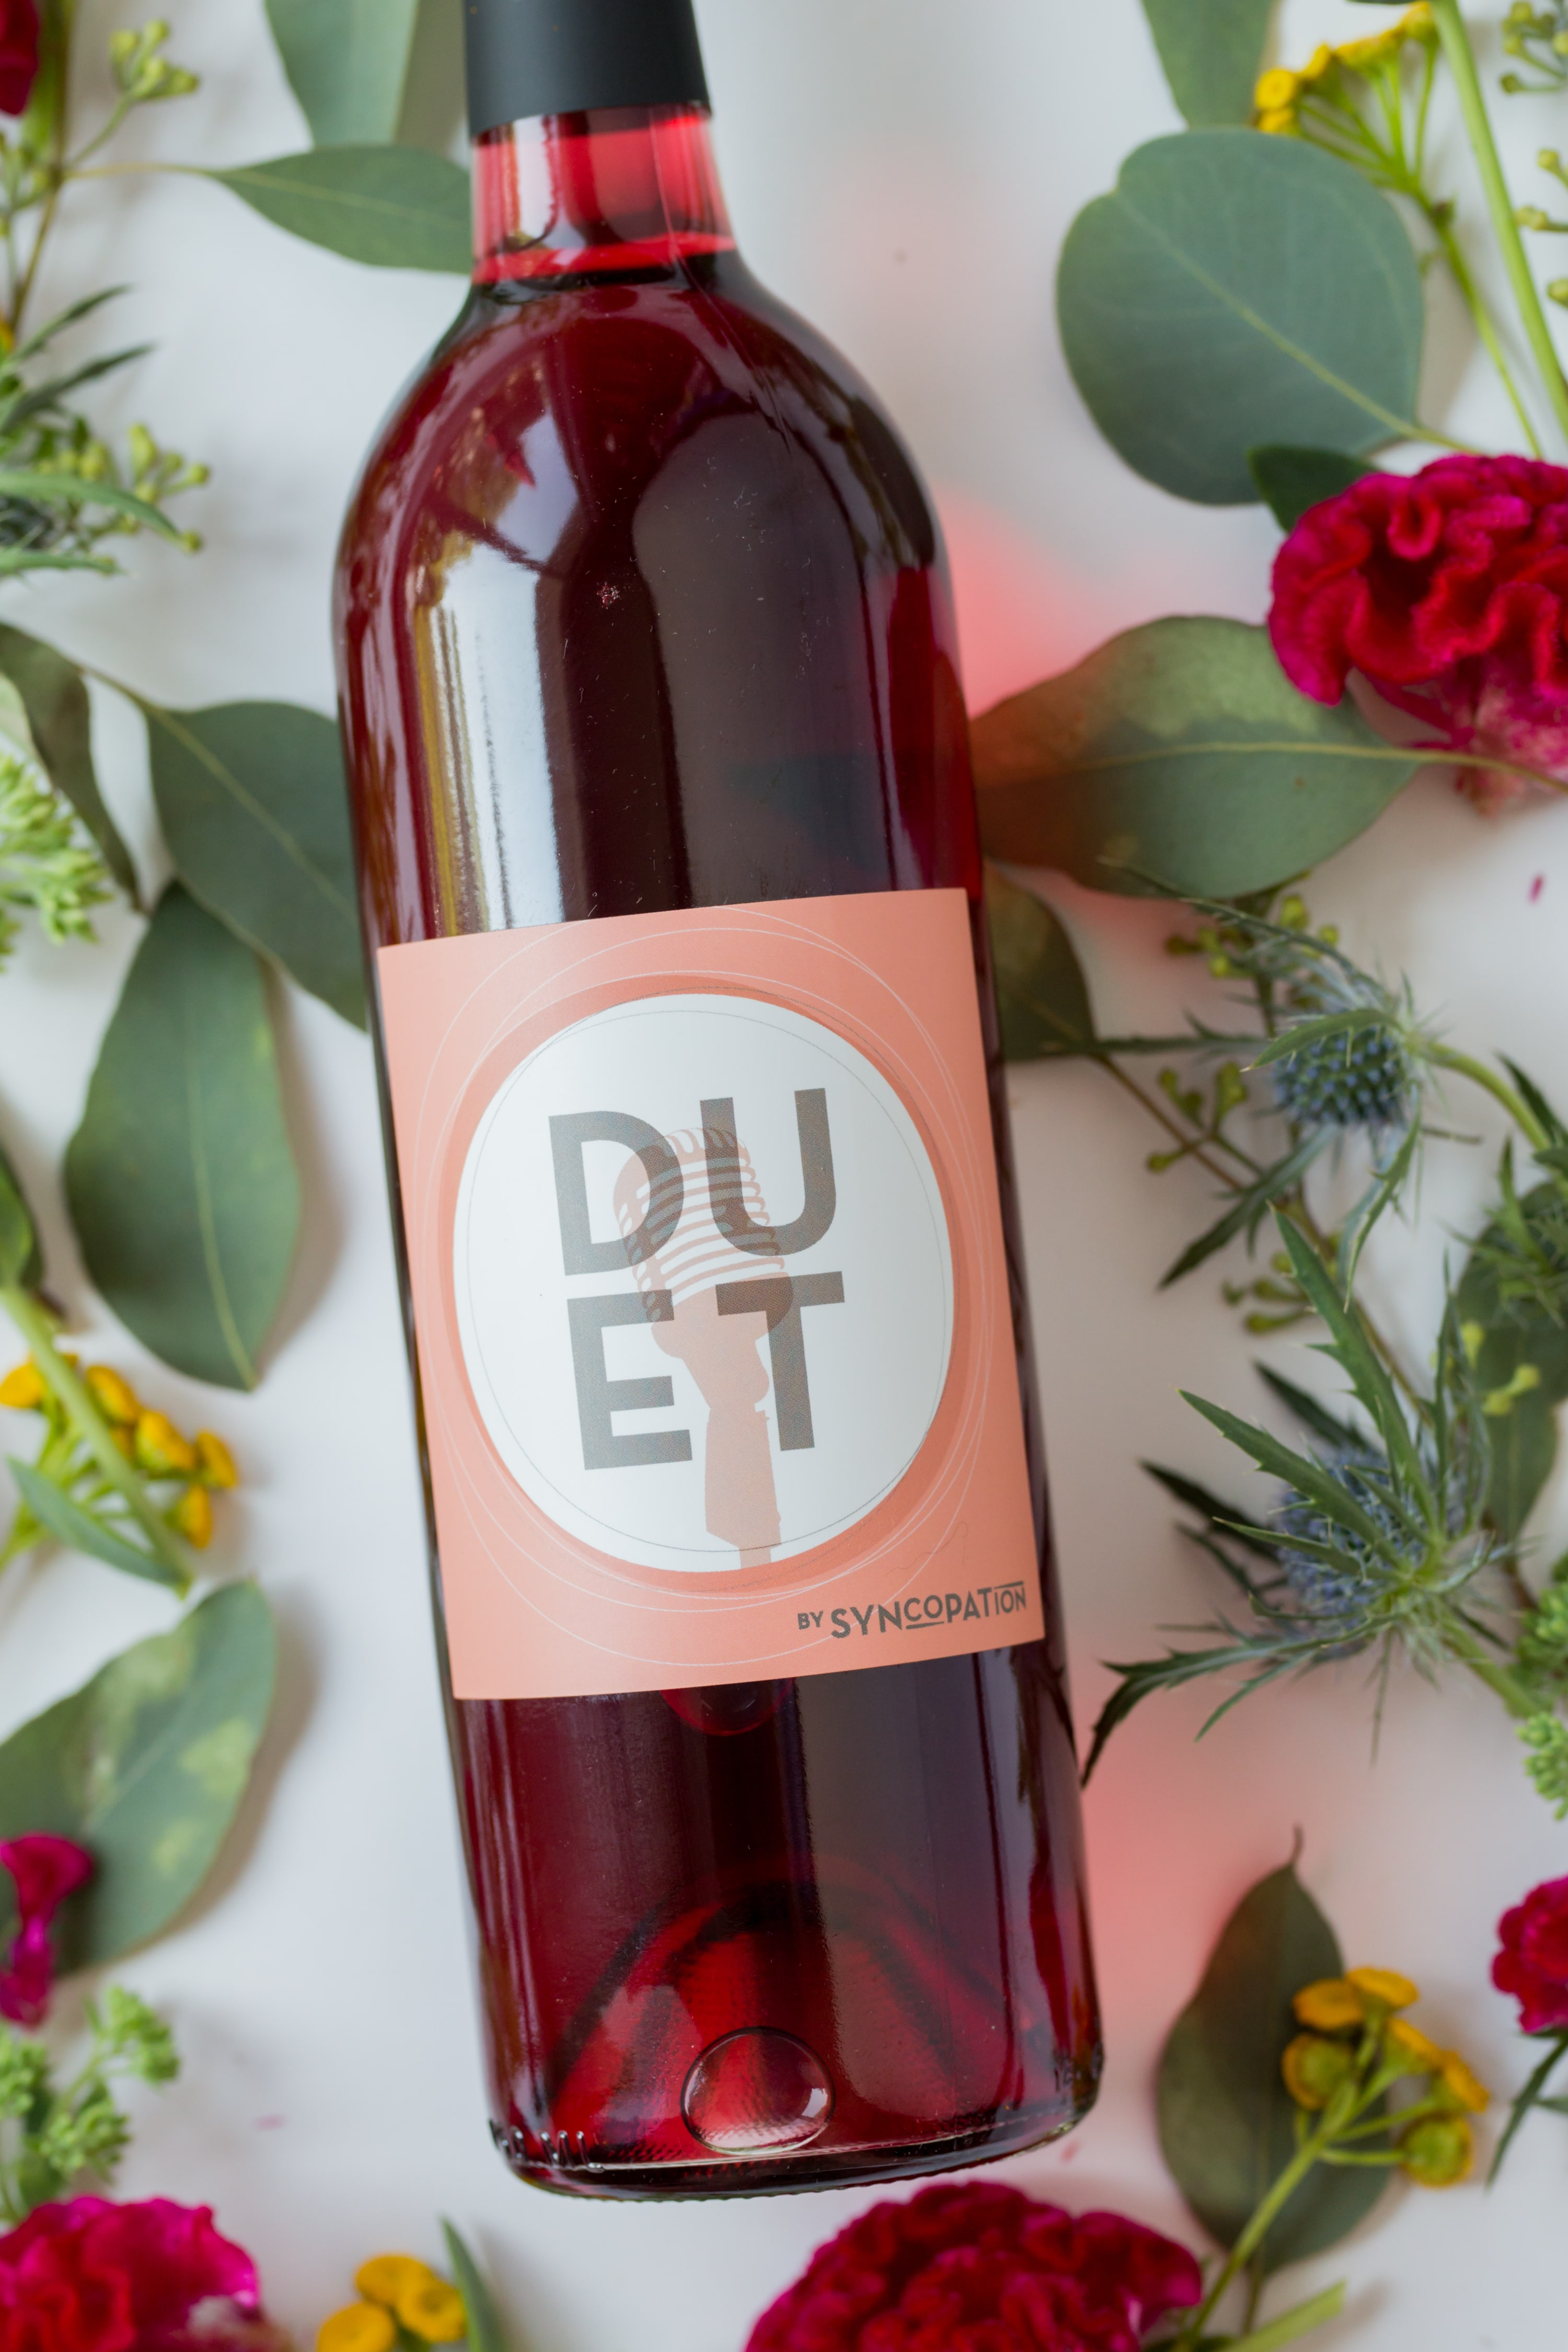 Syncopation Duet Rose 2017 Vintage